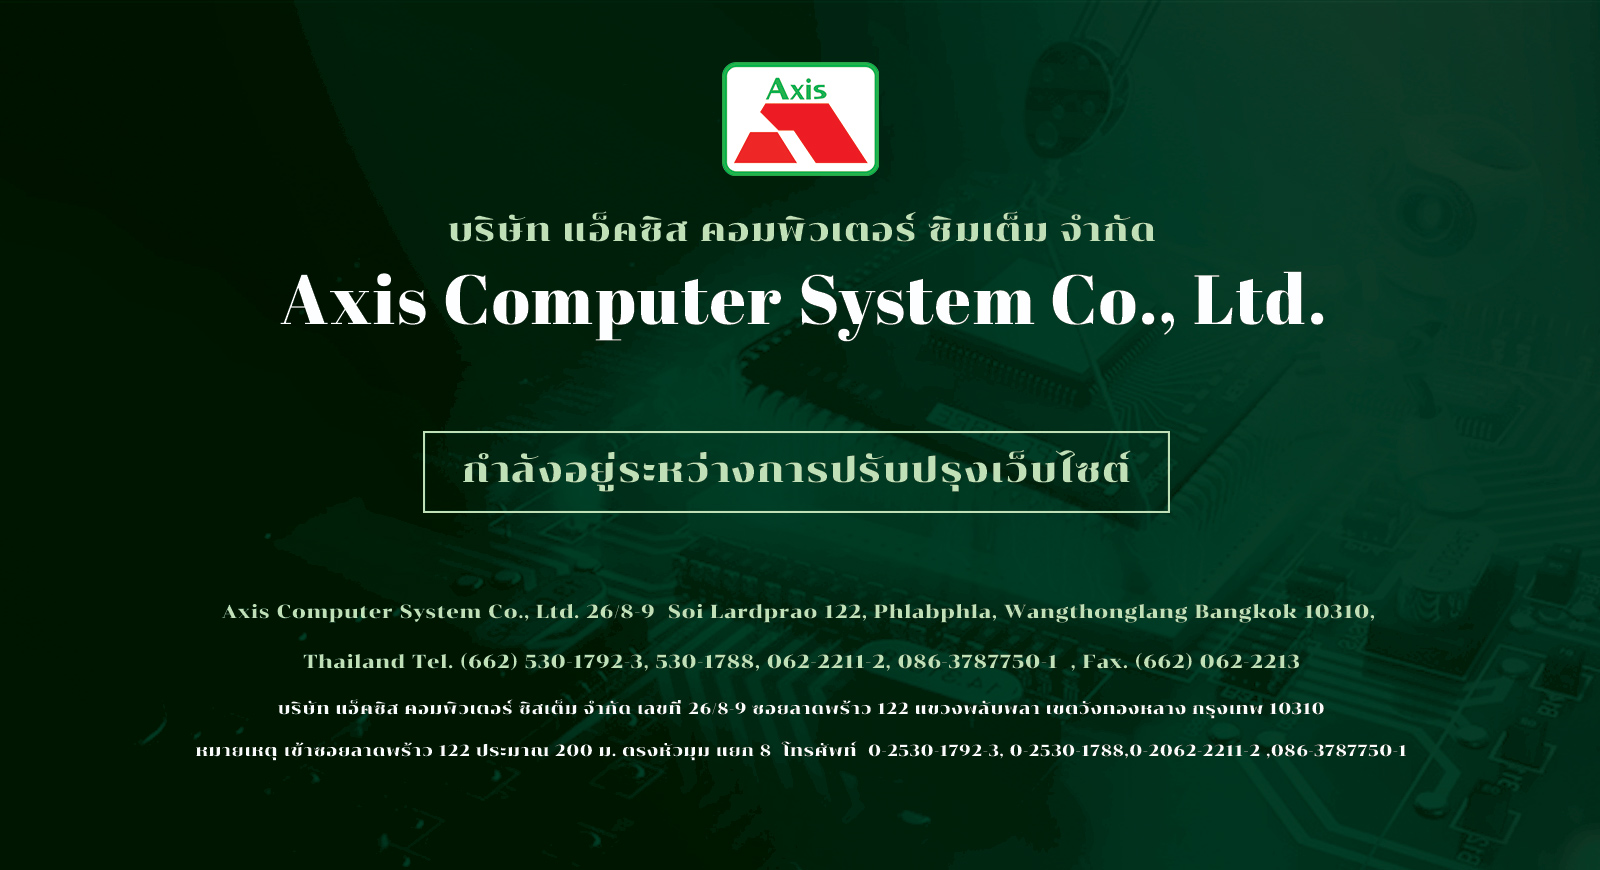 Axis Computer System Co., Ltd.